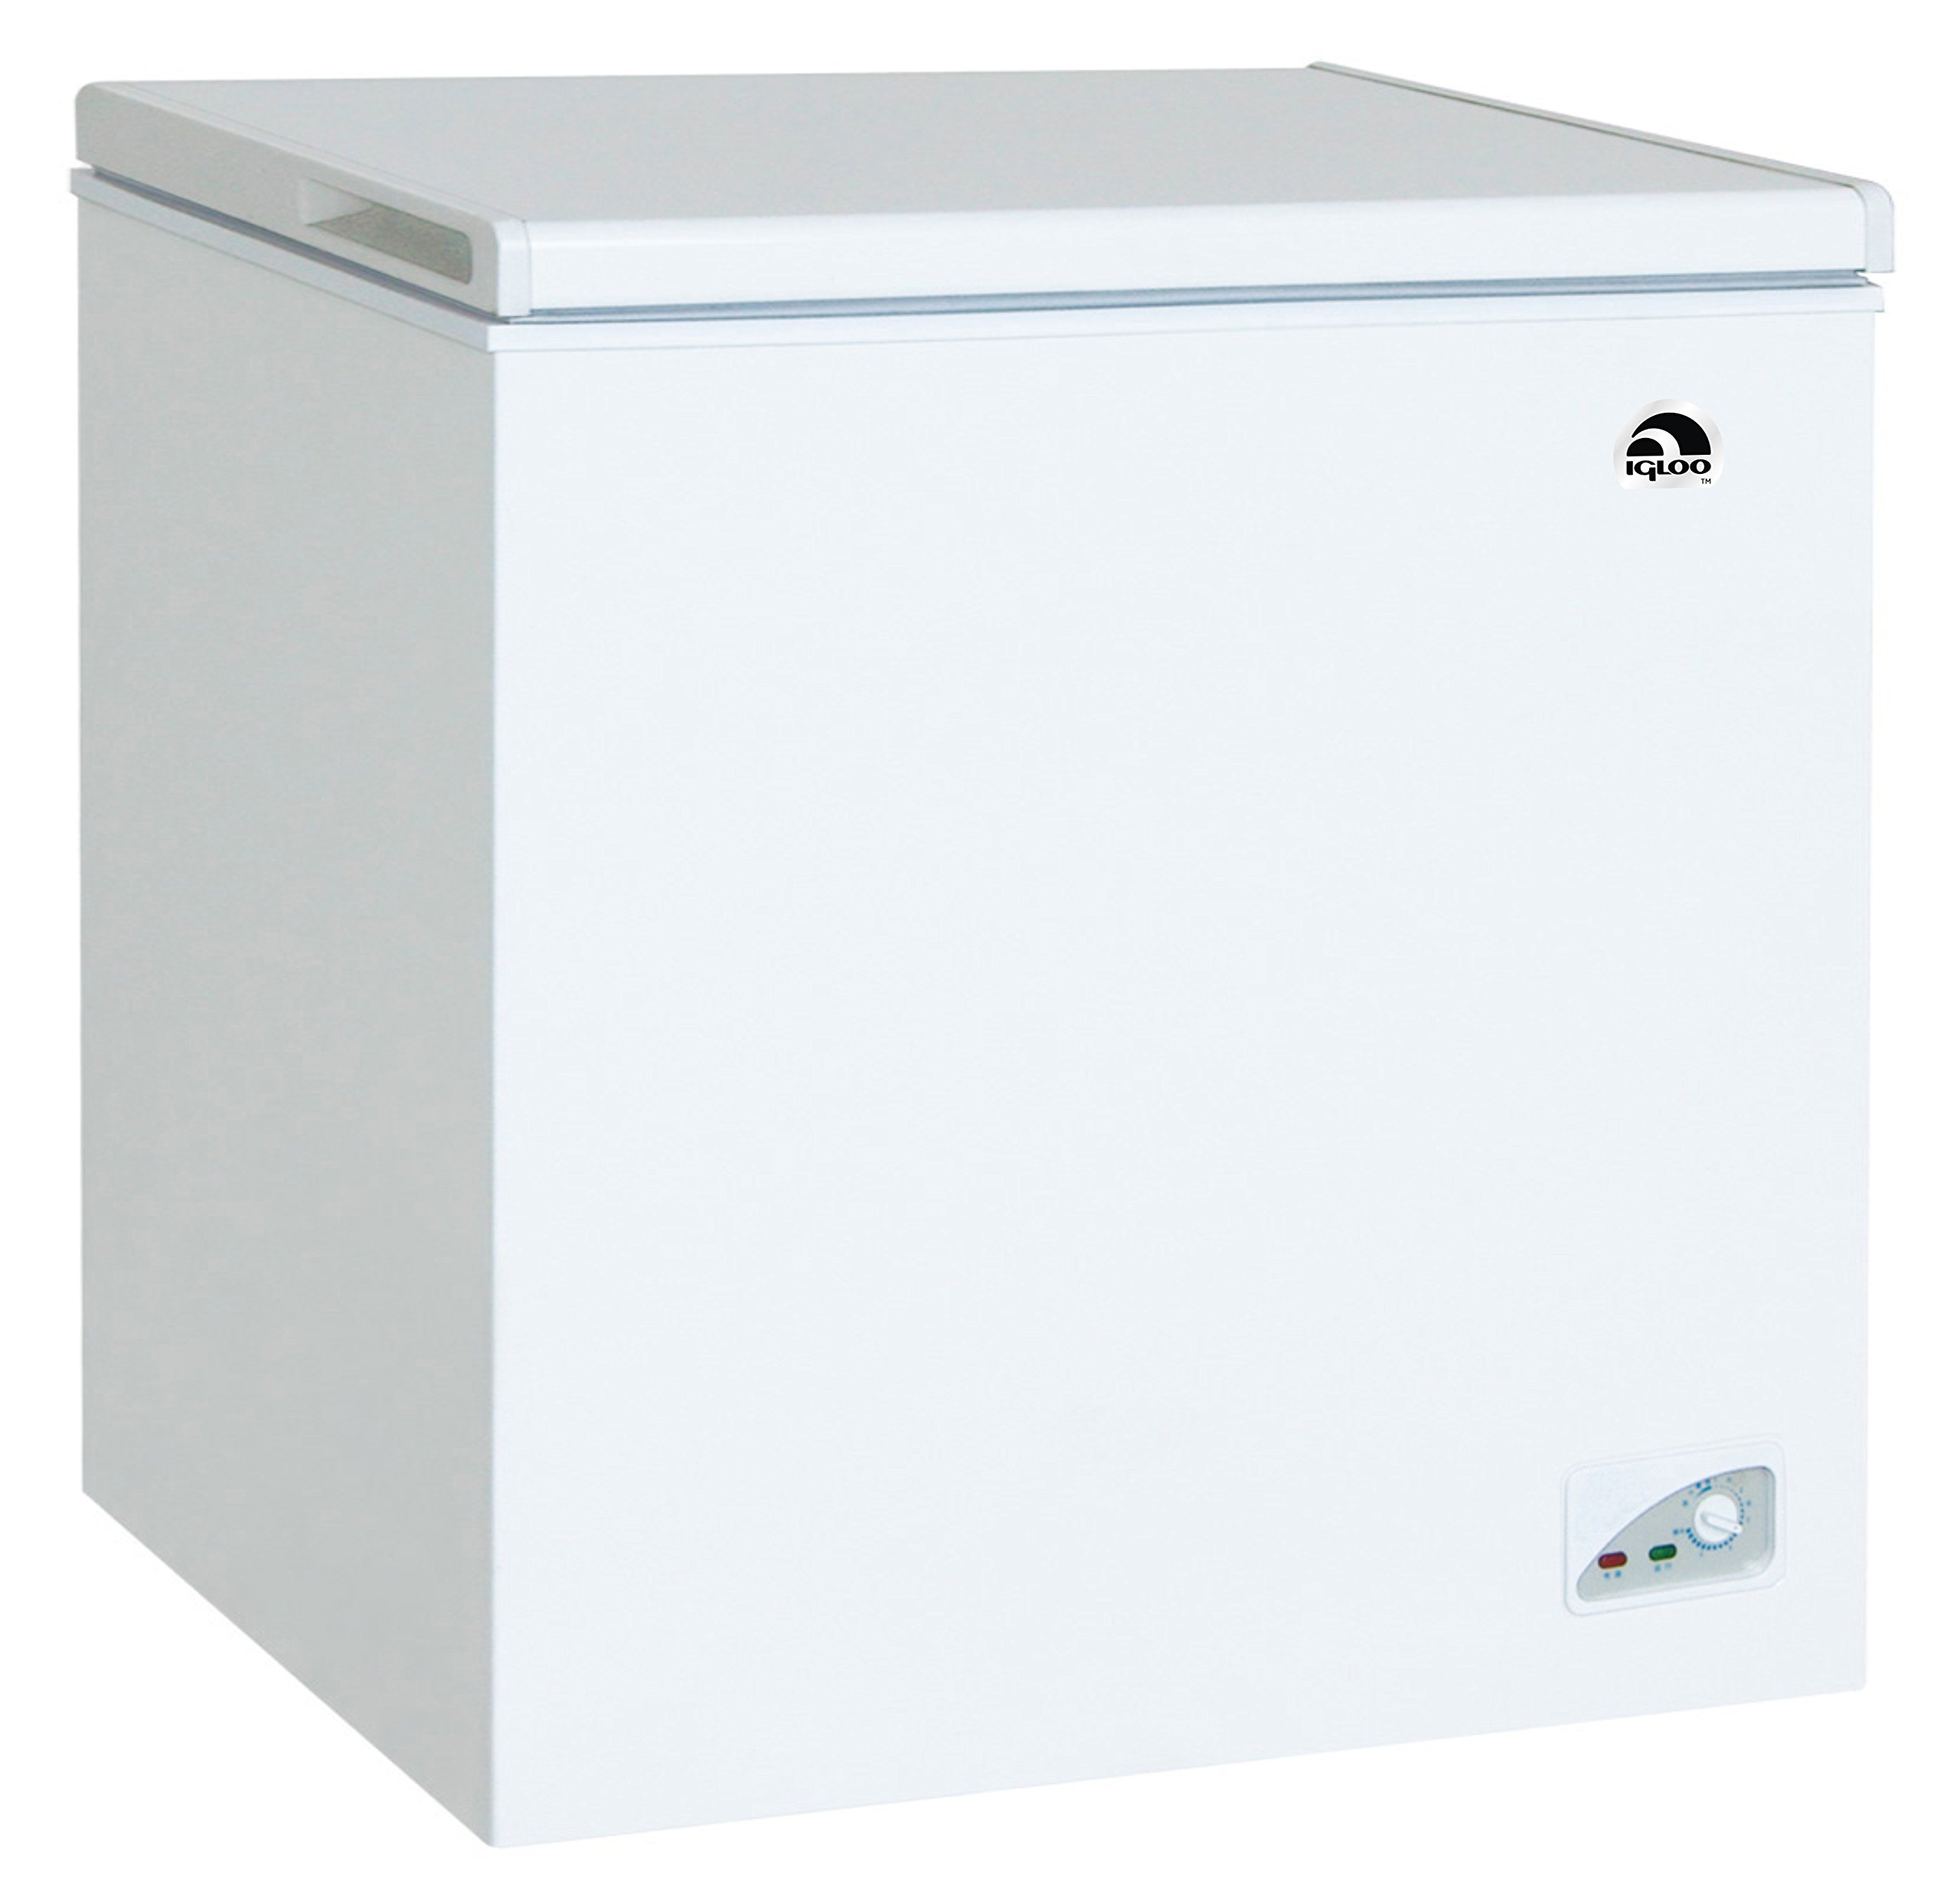 Igloo FRF472 Chest Freezer, 7.1 Cubic Feet, White by Igloo